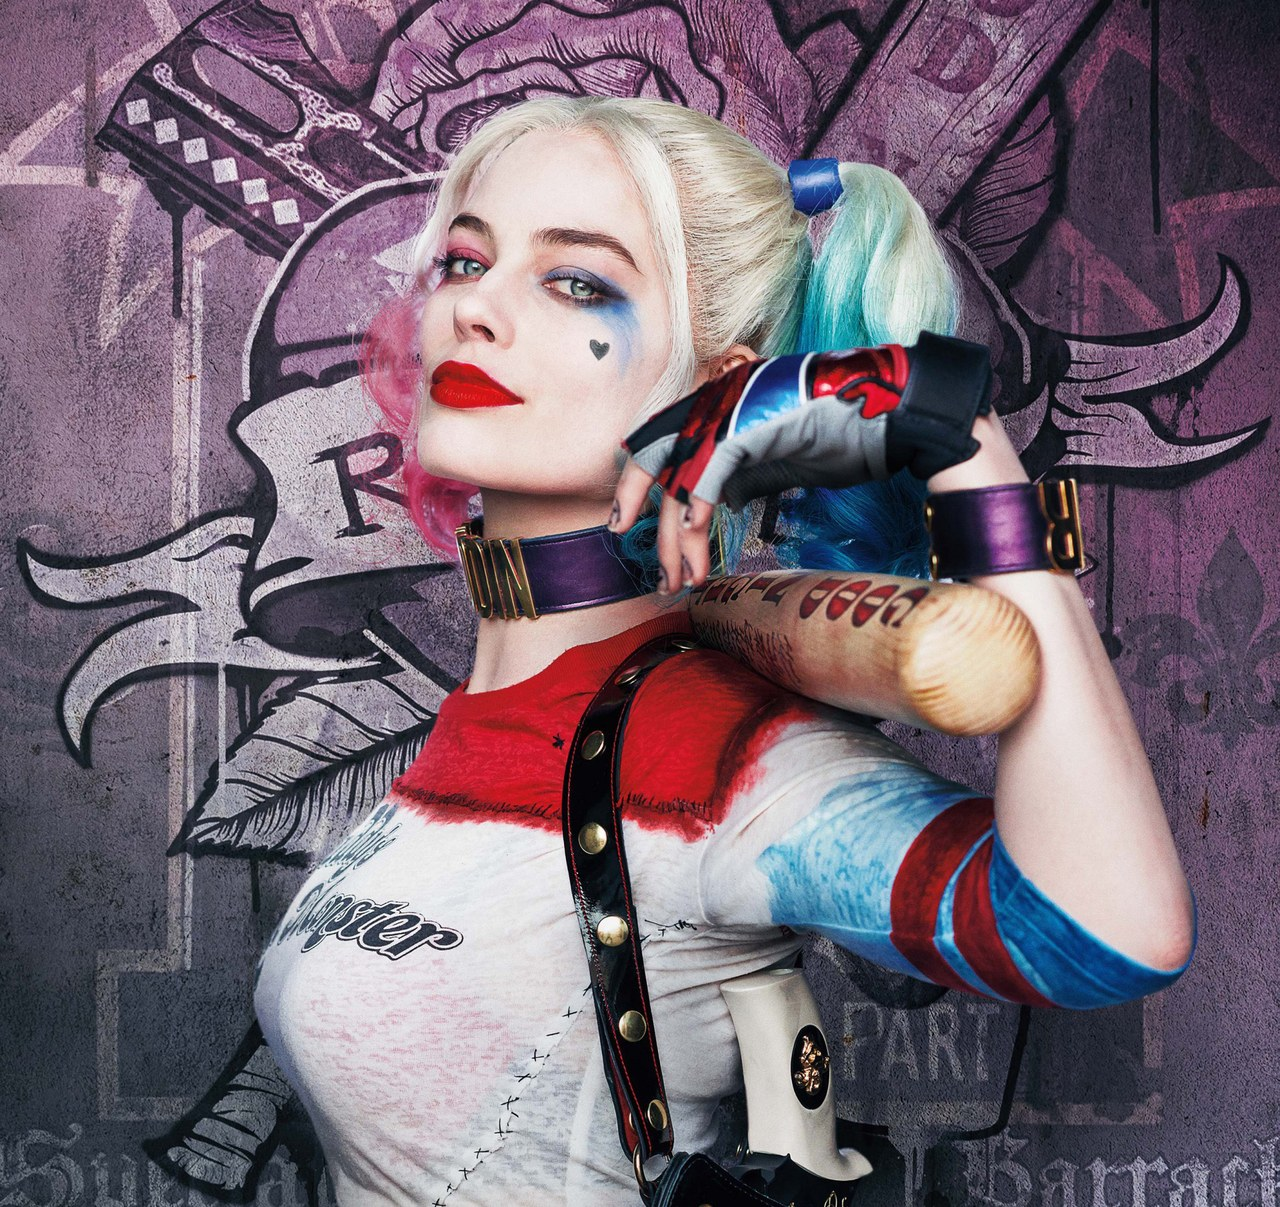 SUICIDE SQUAD, US character poster, Margot Robbie as Harley Quinn, 2016. © Warner Bros. / courtesy